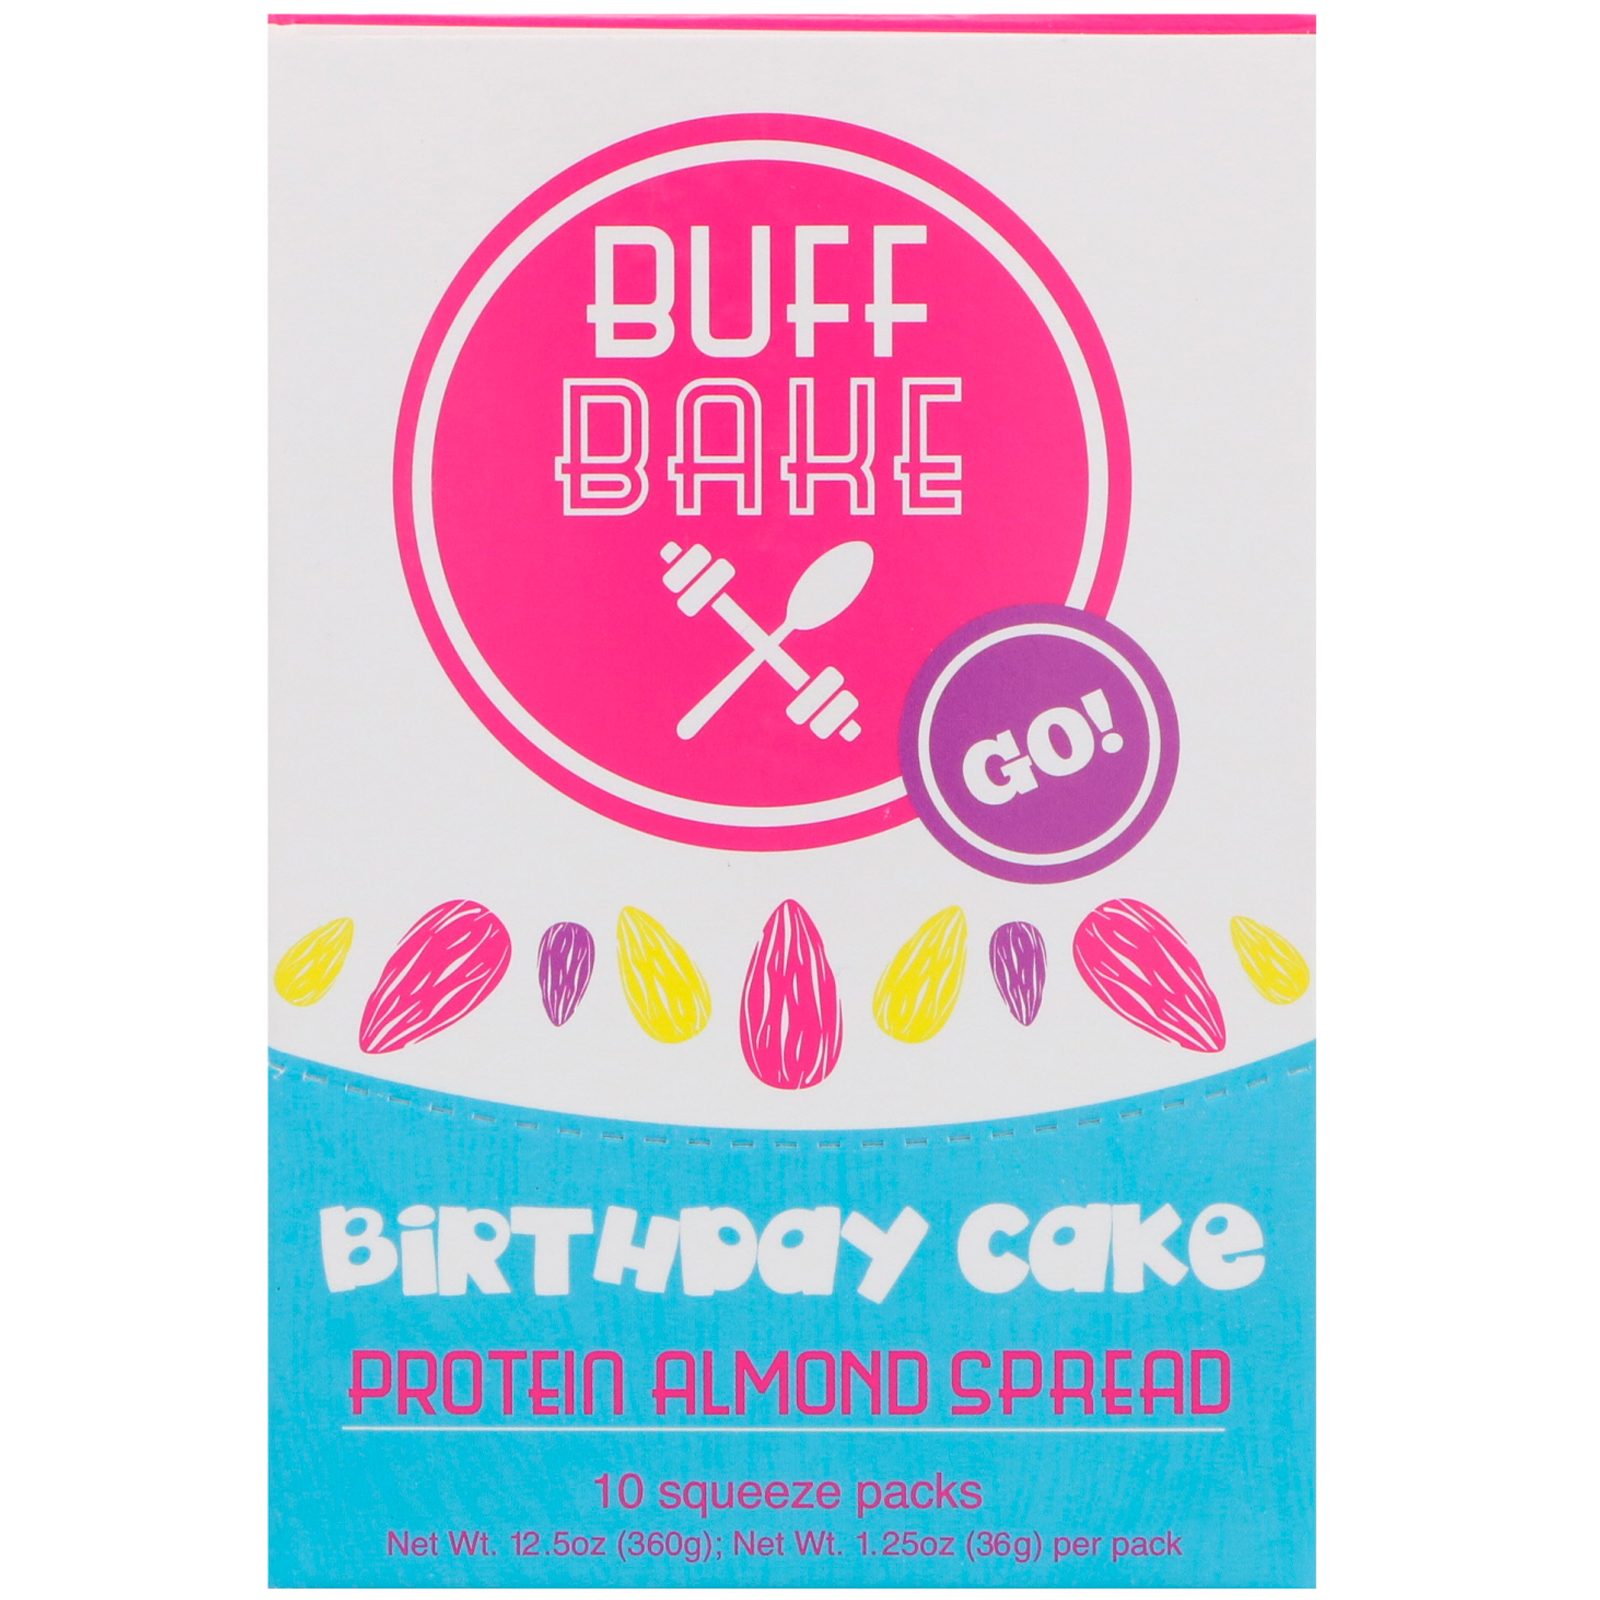 Buff Bake Birthday Cake Protein Almond Spread 10 Squeeze Packs 125 Oz 36 G Each